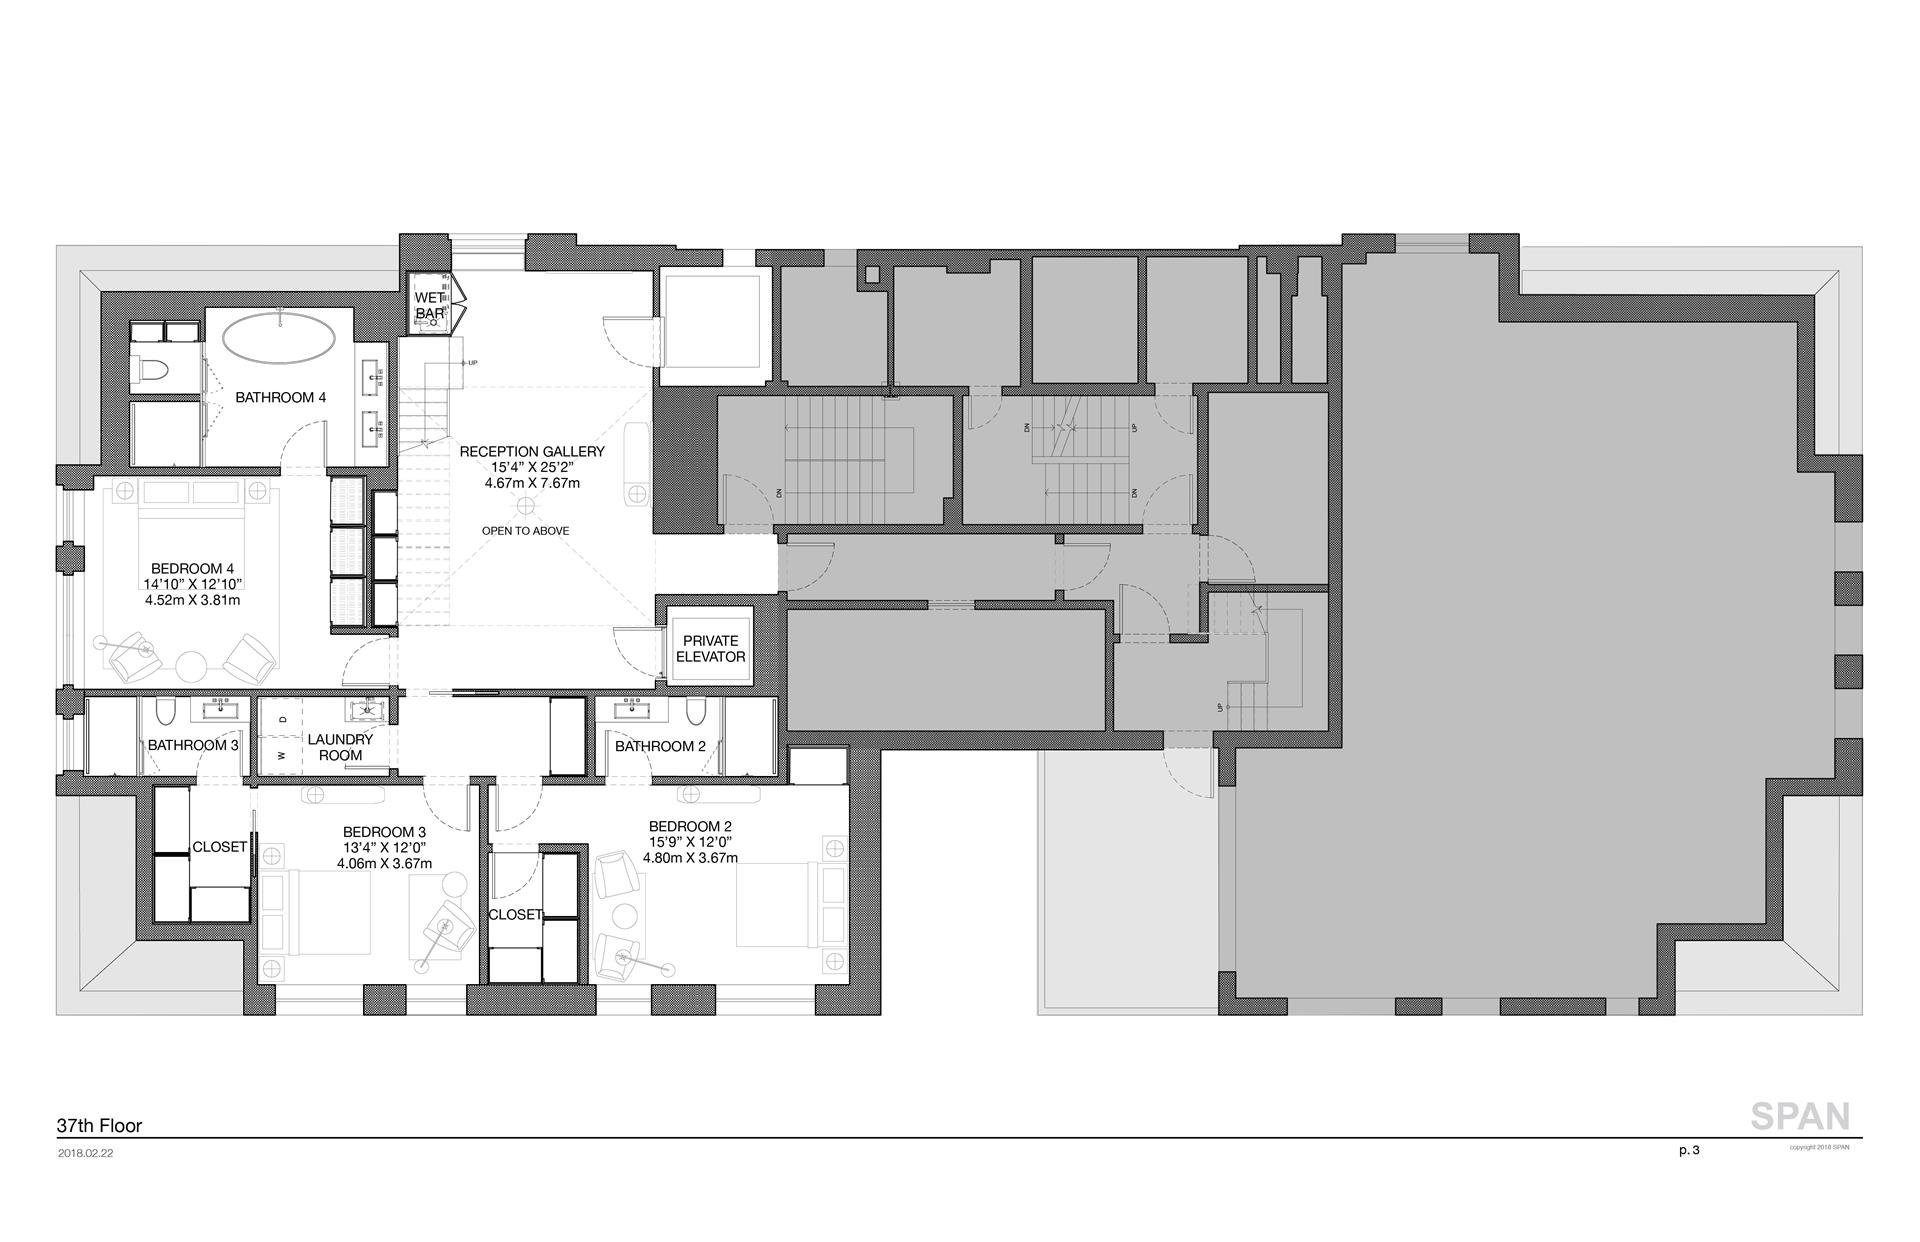 Floor plan of The Hampshire House, 150 Central Park South, PH - Central Park South, New York